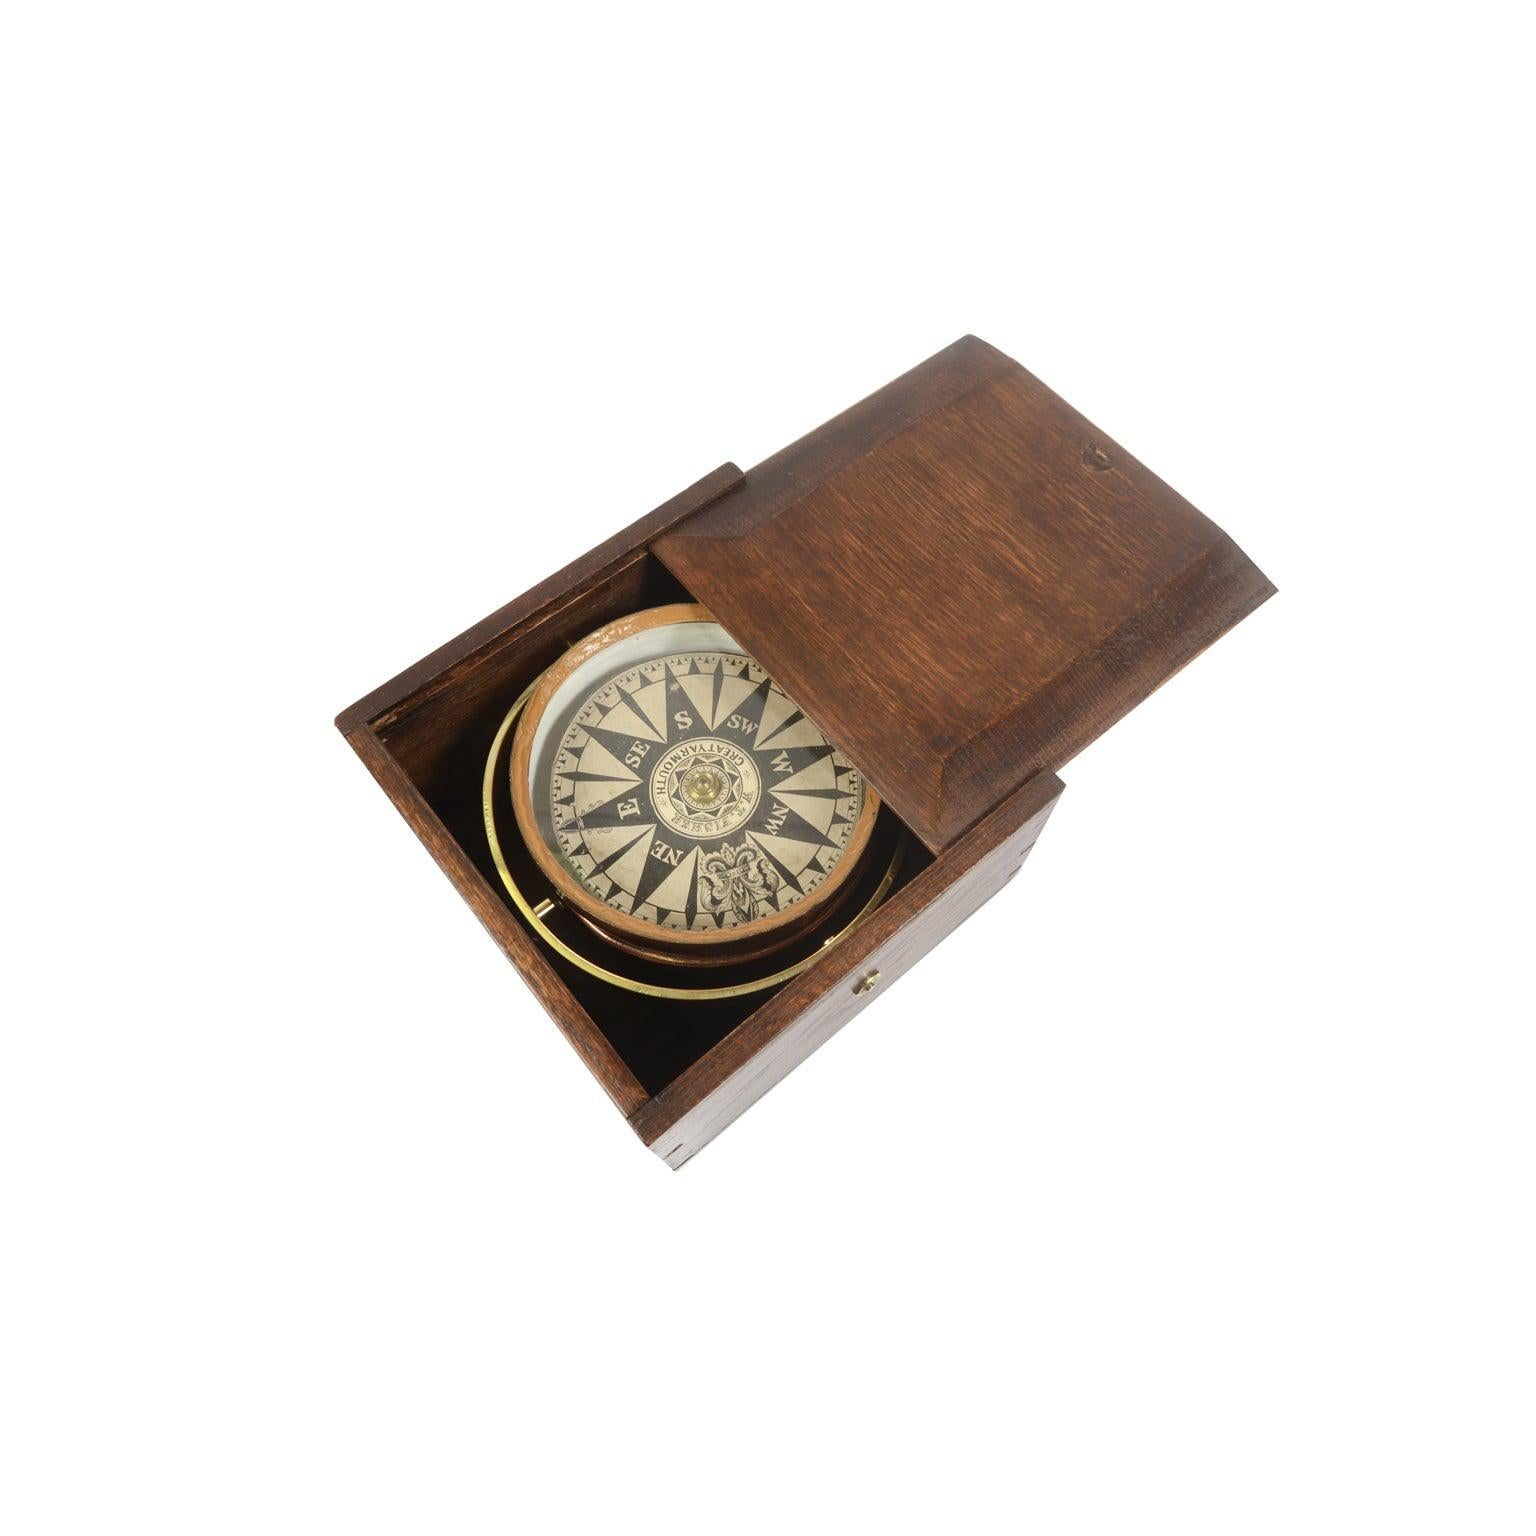 Compass in its Original Wooden Box W. T. Fisher, Mid 19th Century